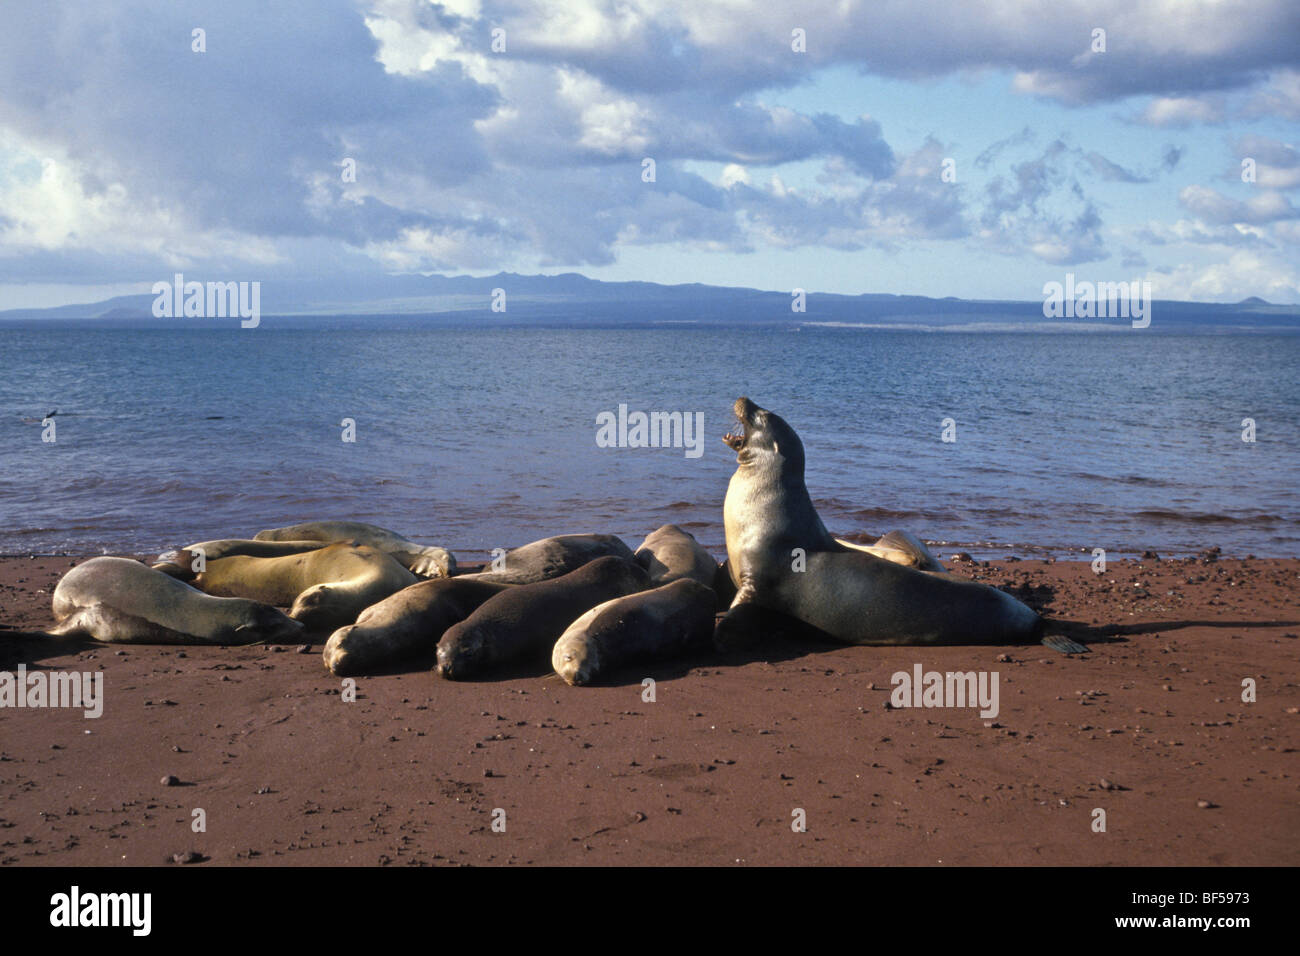 Californian Sea Lions (Zalophus californianus wollebaeki), Galapagos, Ecuador, South America - Stock Image